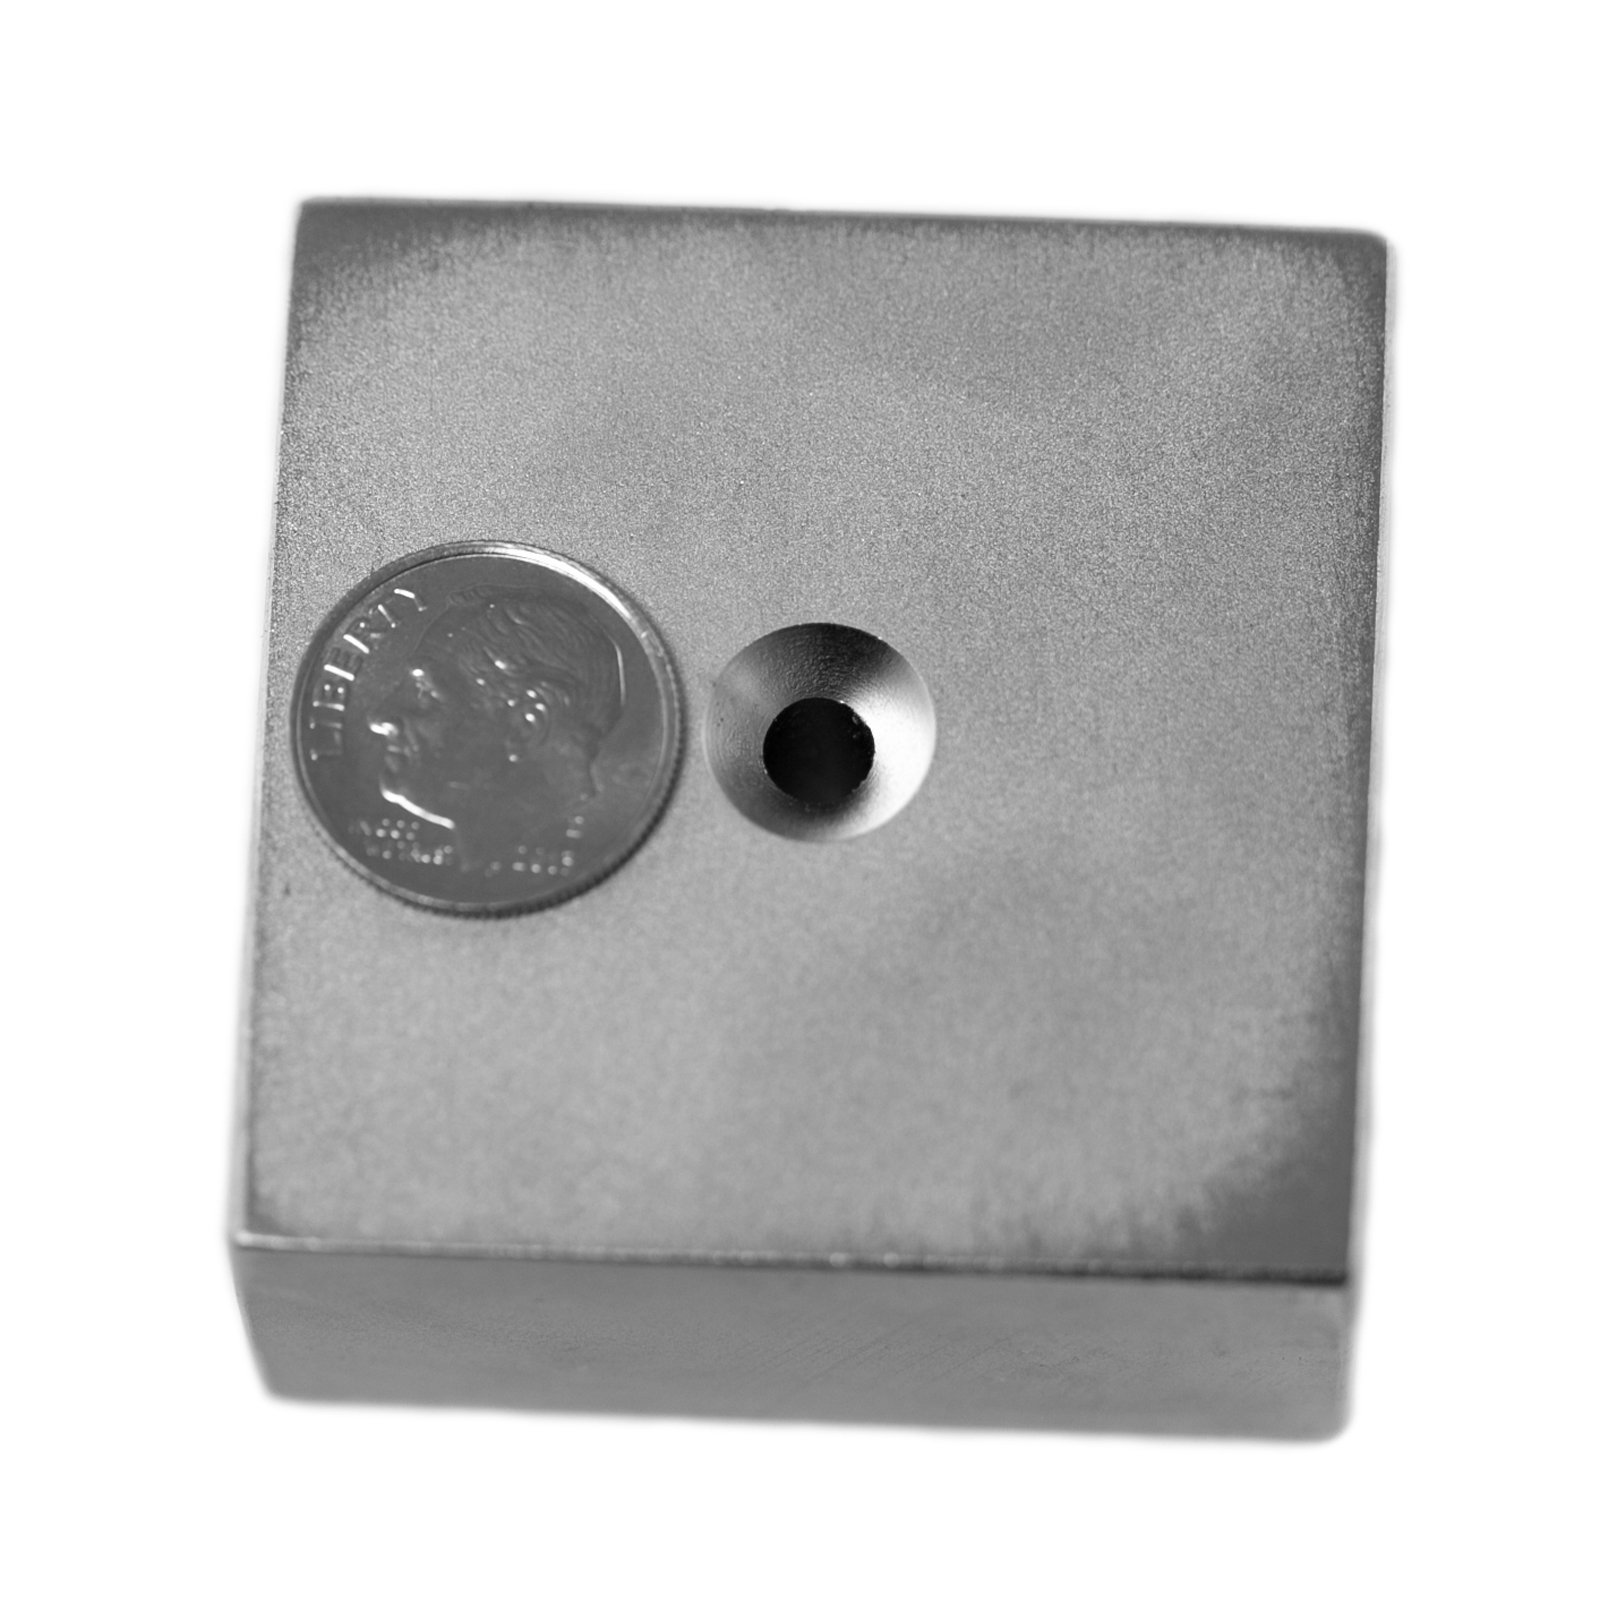 Applied Magnets 2'' x 2'' x 1'' Dual Sided Countersunk Grade N42 Neodymium Block Magnet